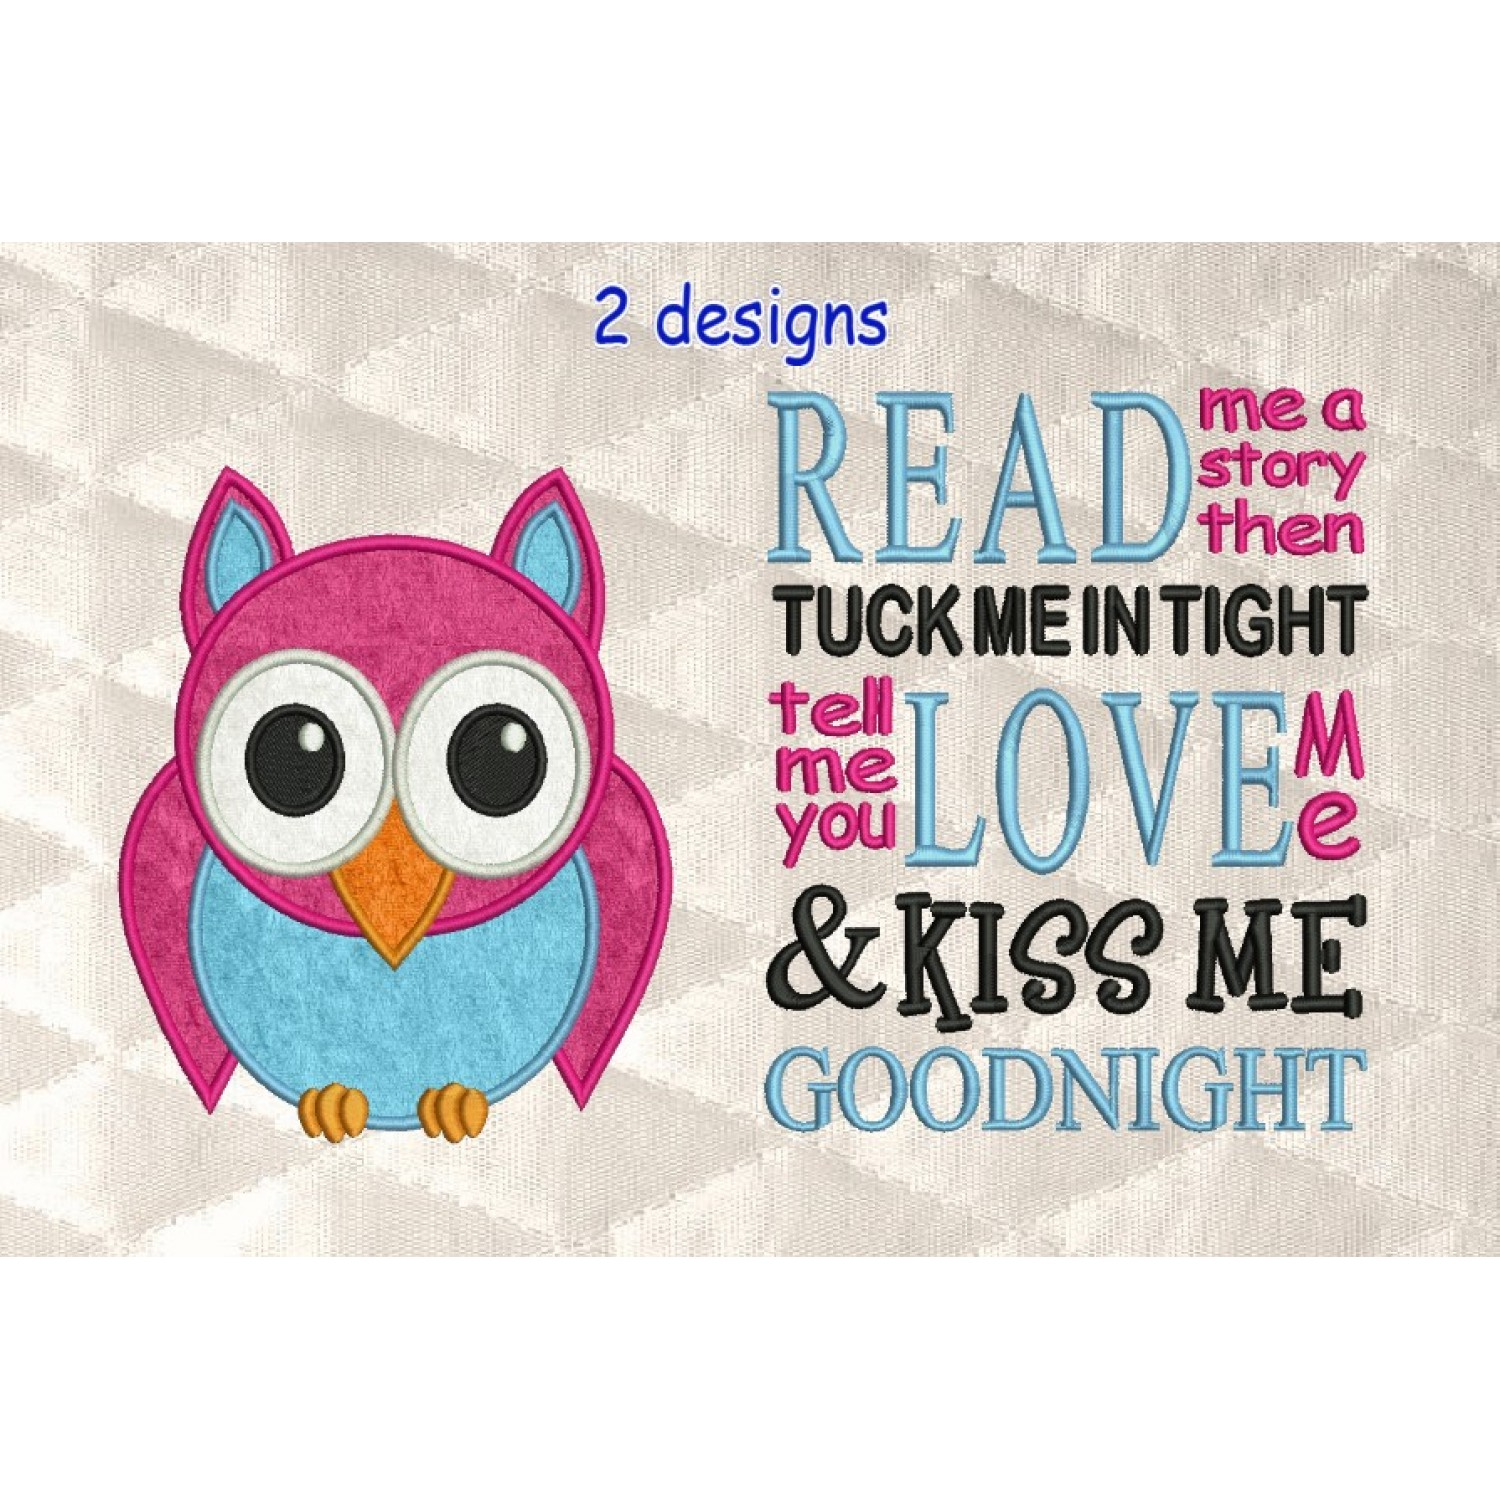 Owl applique with read me a story